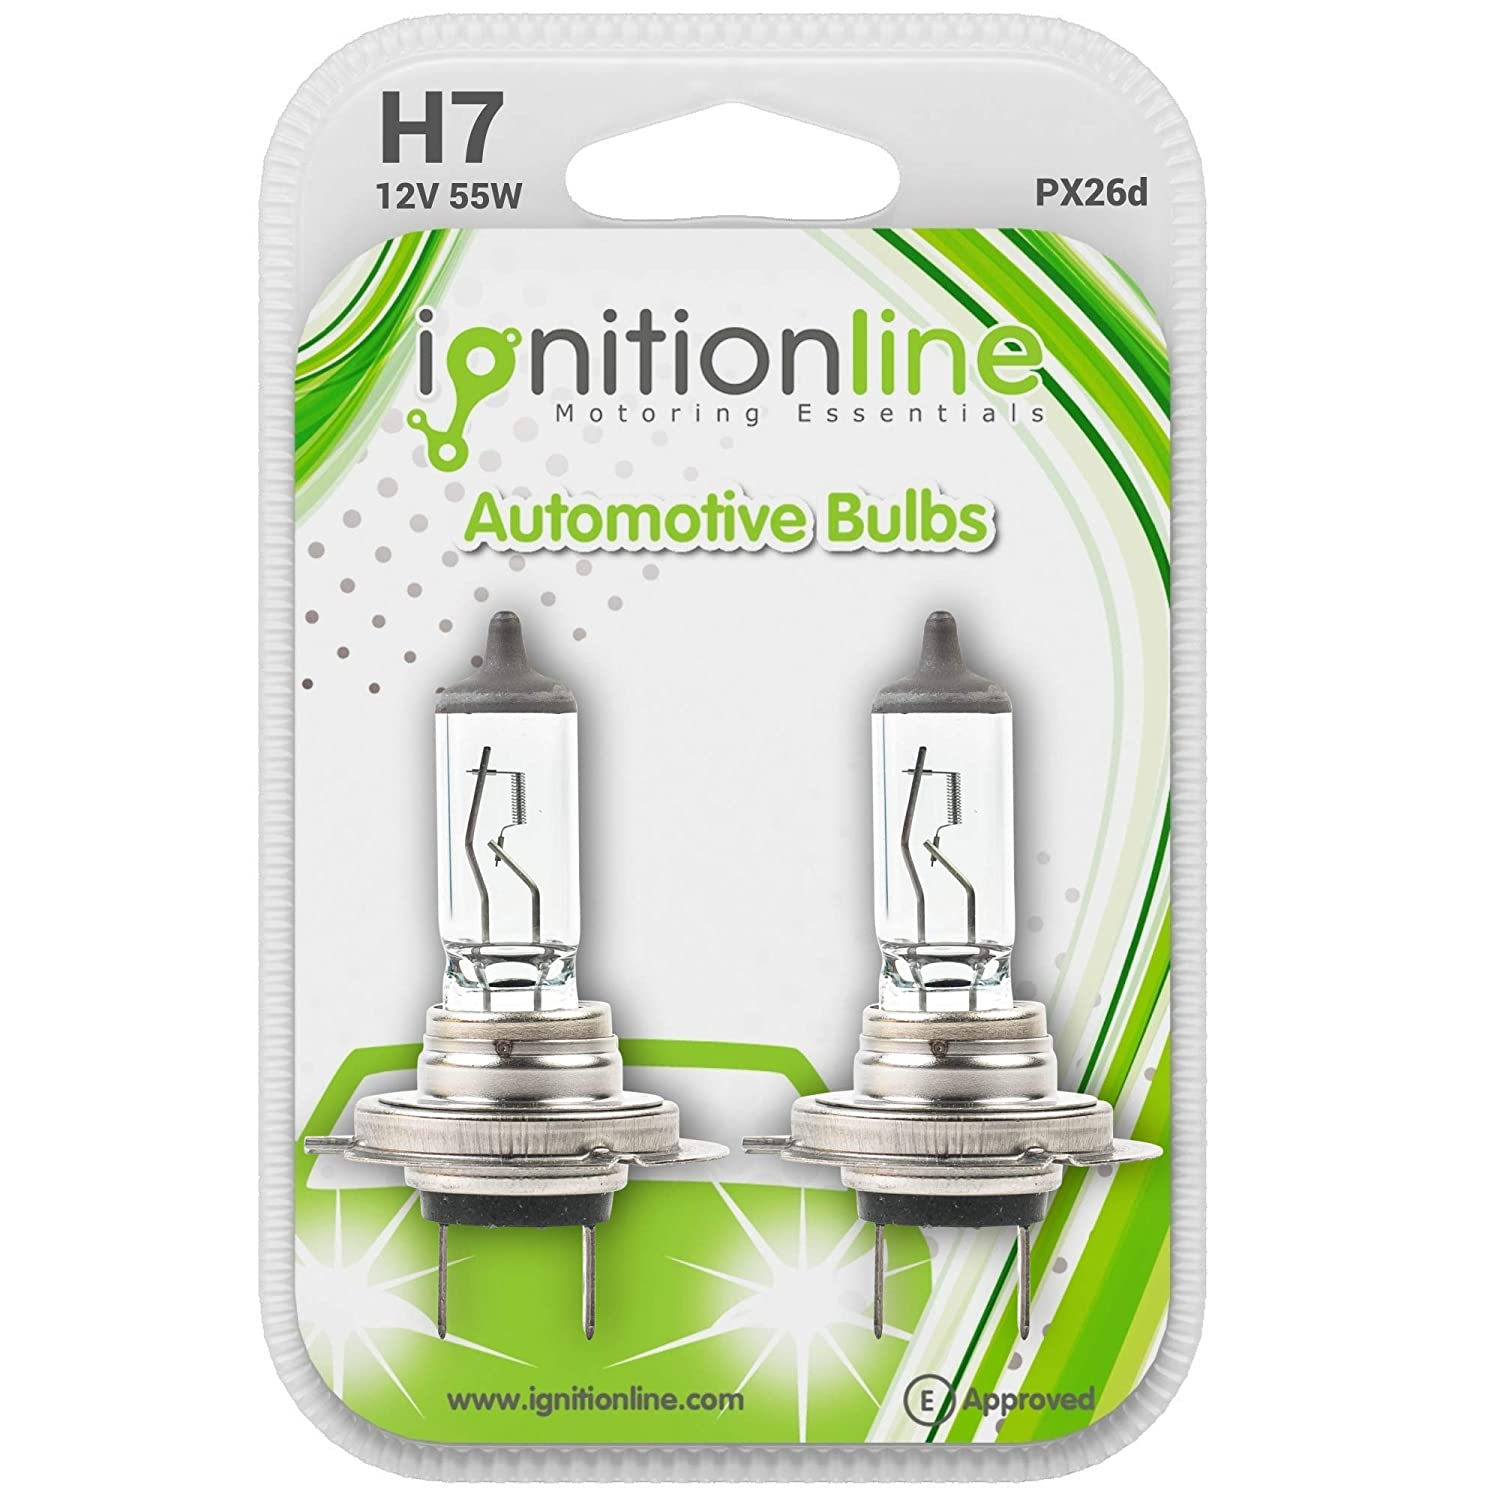 IgnitionLine H7 499 12V 55W Standard Halogen Headlamp Headlight Car Bulbs 2 PIN PX26d (Pack Of 2)